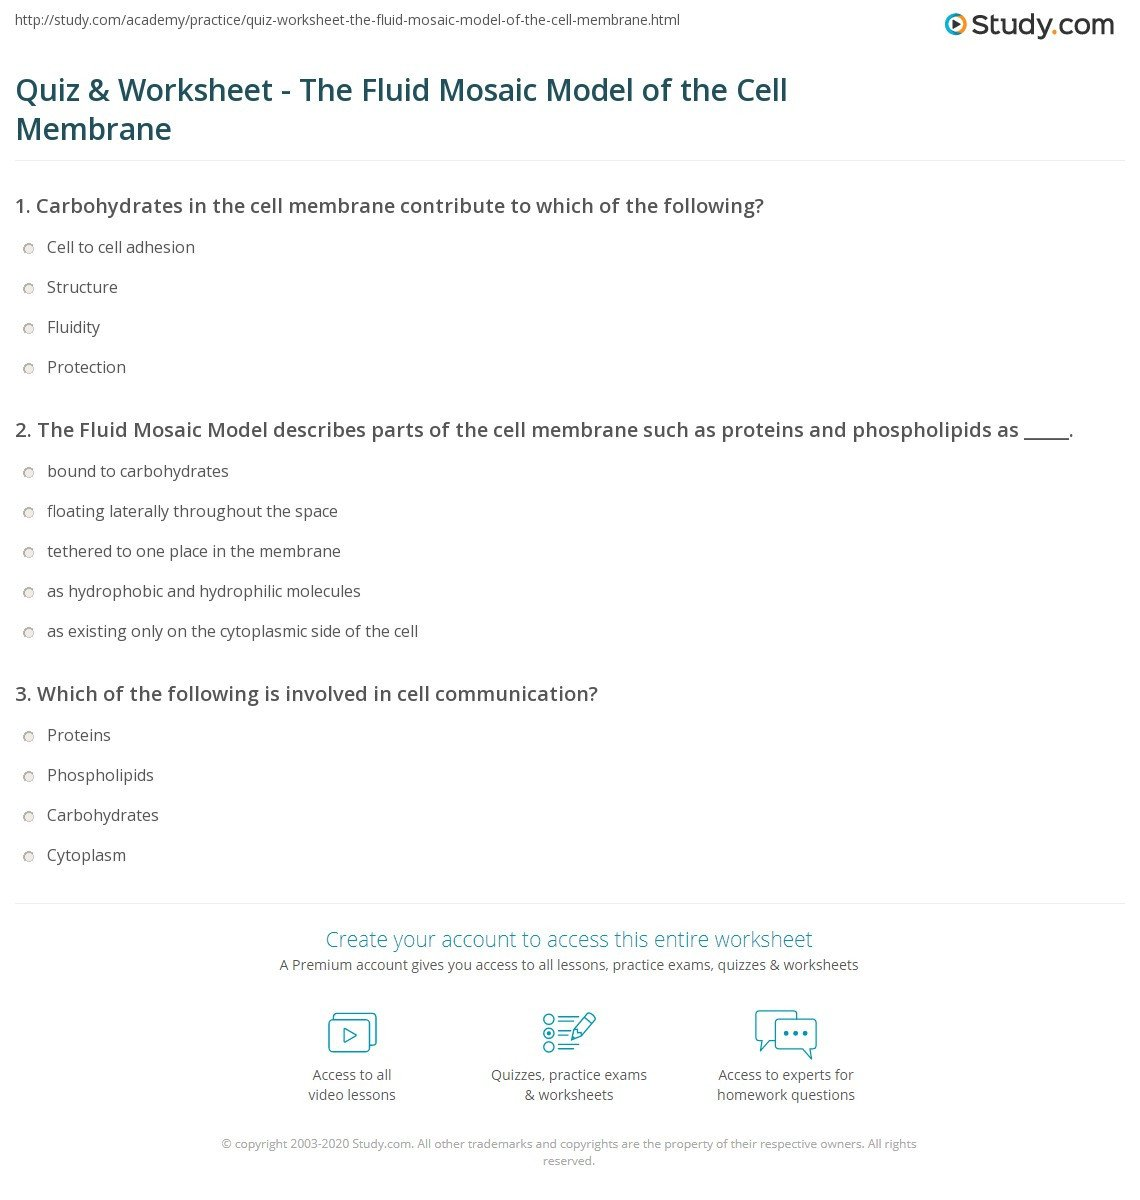 quiz worksheet the fluid mosaic model of the cell membrane